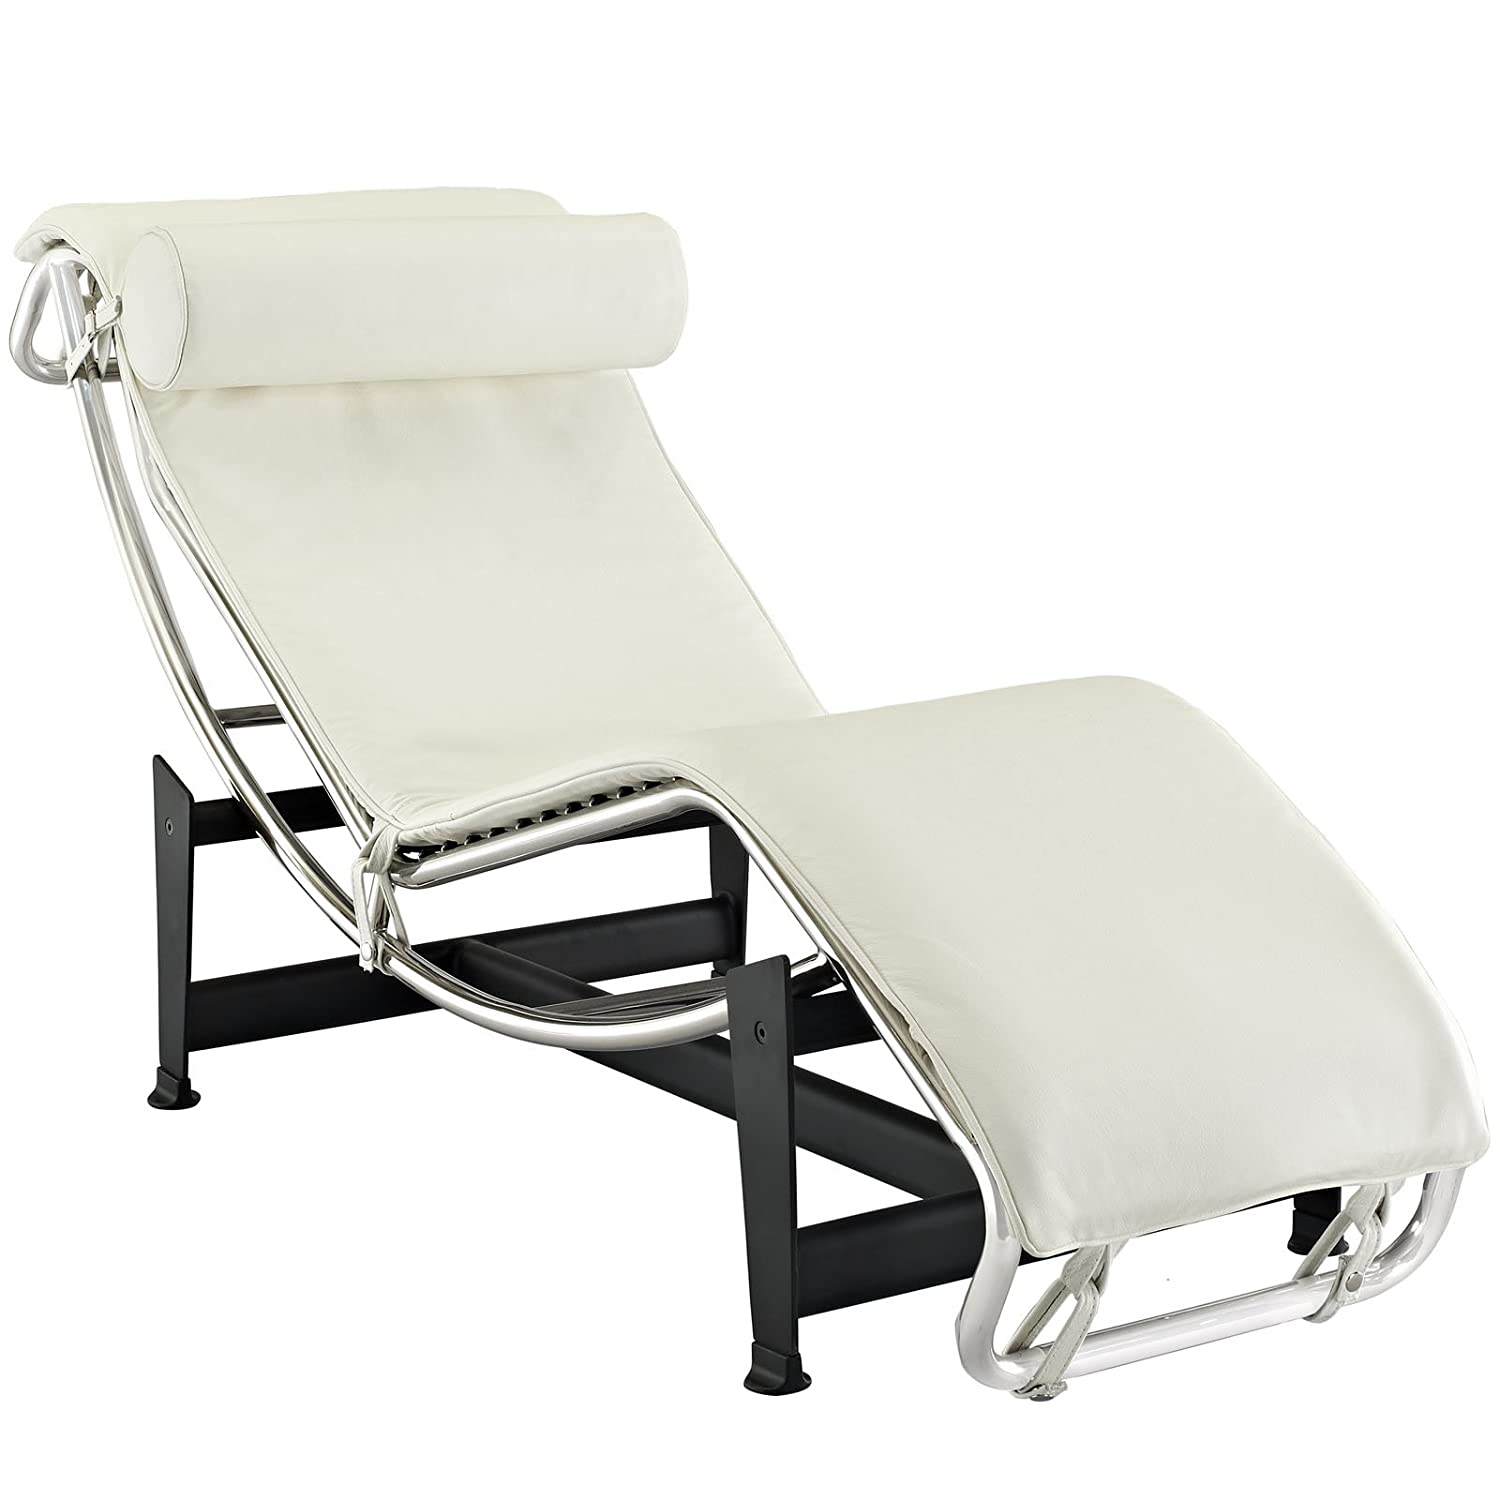 Charmant Amazon.com: Lc4 Le Corbusier Chaise Lounge Chair In White: Kitchen U0026 Dining